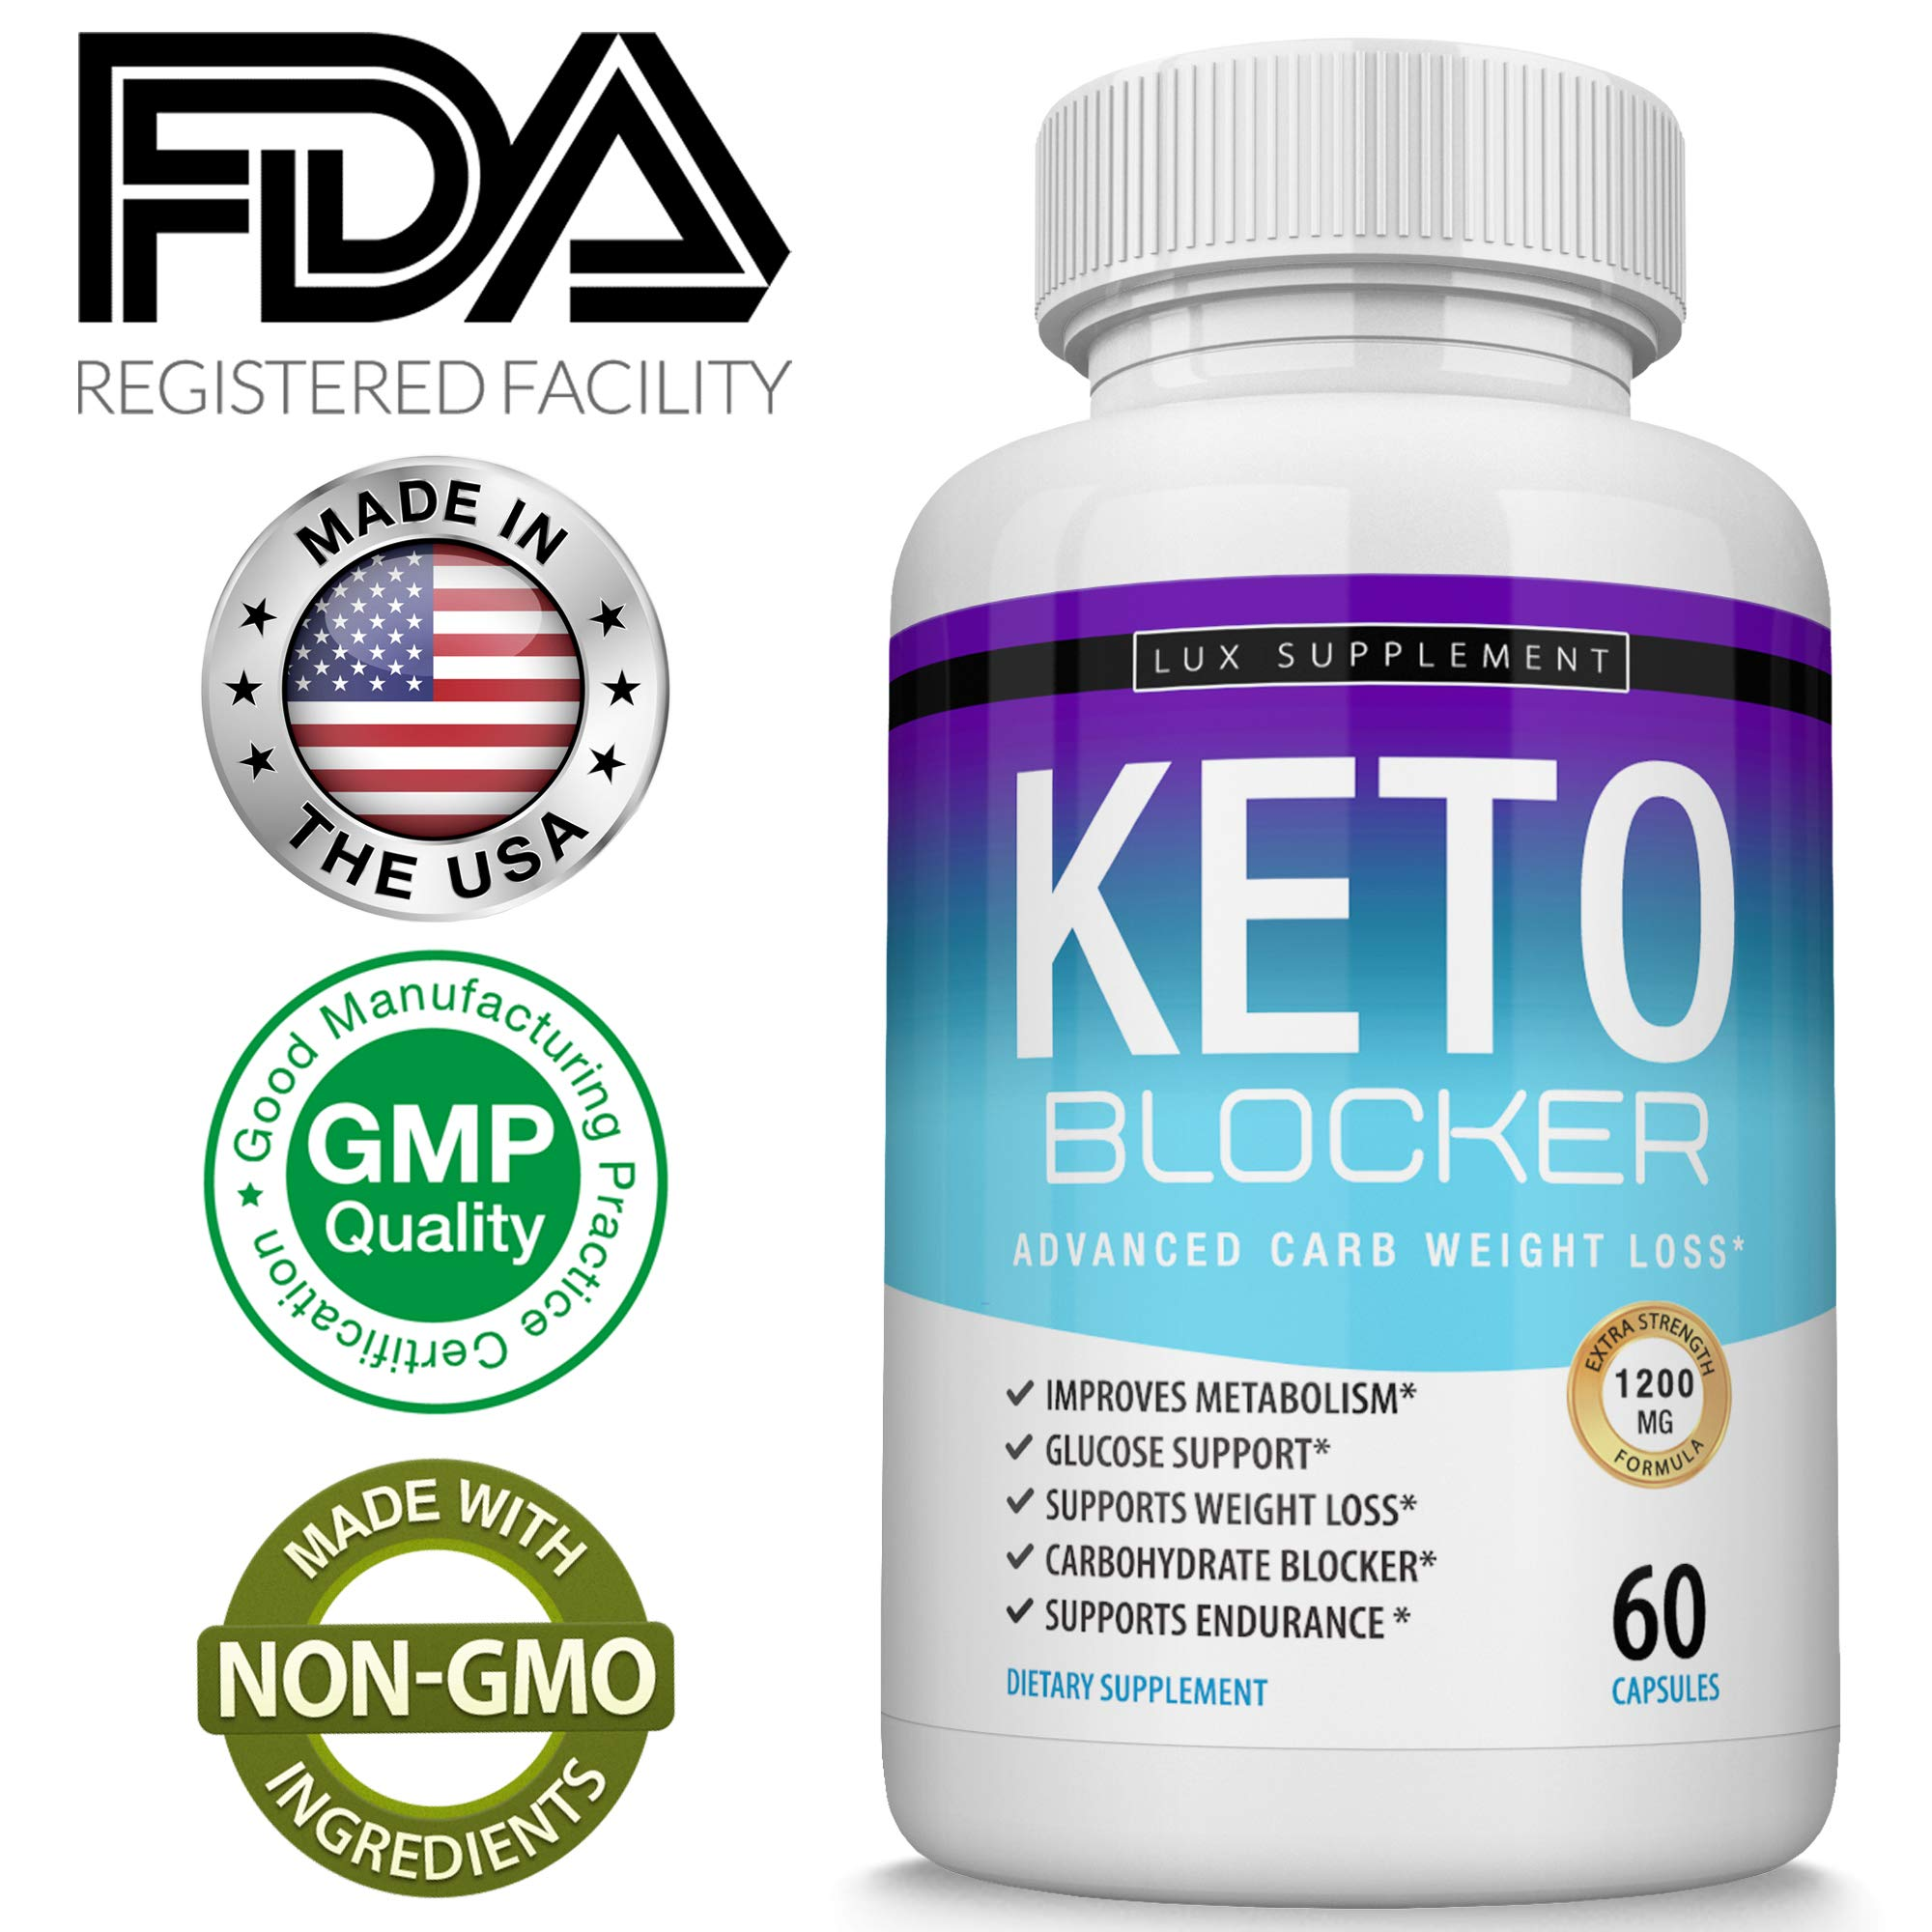 Keto Blocker Pills Advanced Carb Weight Loss - 1200 mg Natural Ketosis Fat Burner for ketogenic Diet, Suppress Appetite & Cravings, Boost Metabolism, Effective Men Women, 60 Capsules, Lux Supplement by Lux Supplement (Image #5)